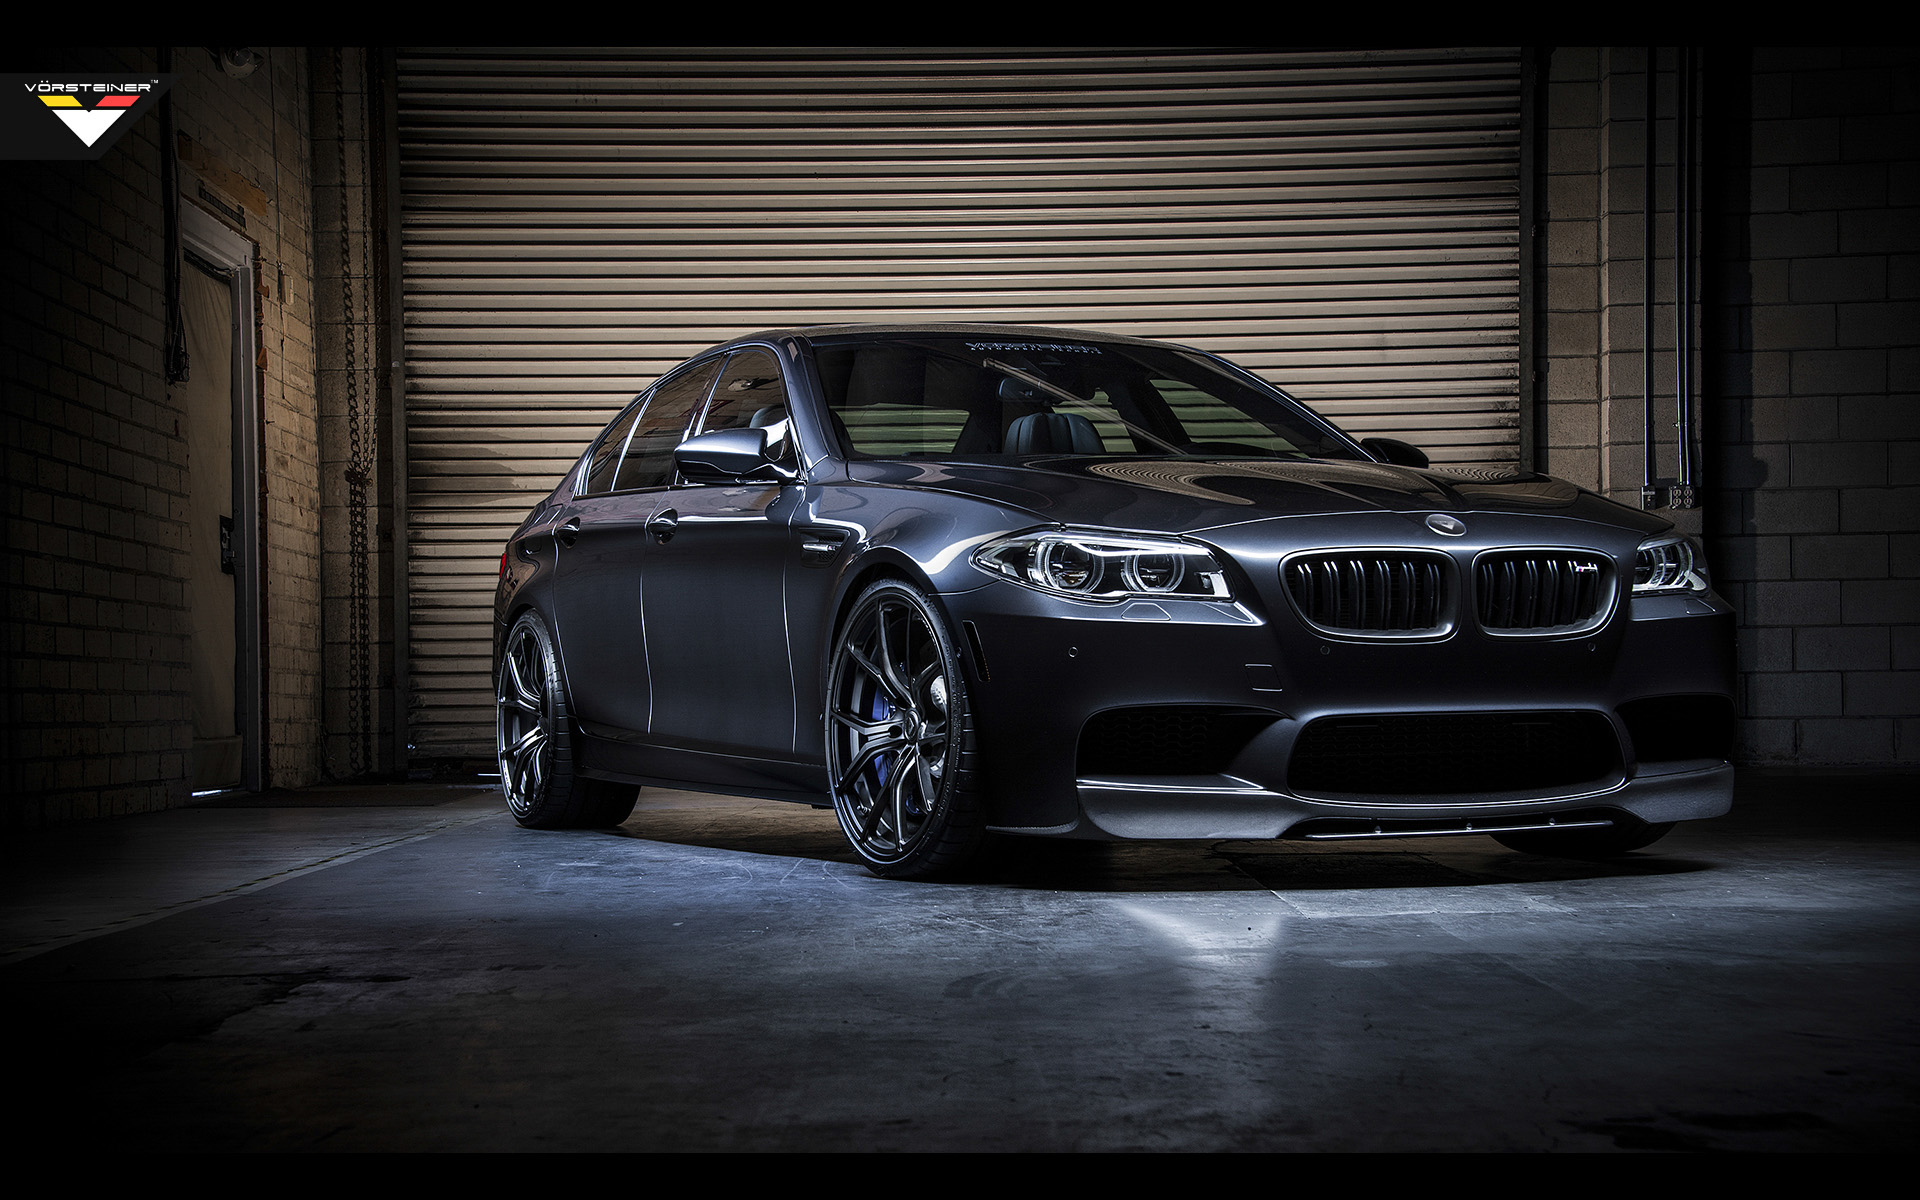 2014 Bmw F10 M5 By Vorsteiner Wallpaper Hd Car Wallpapers Id 3988